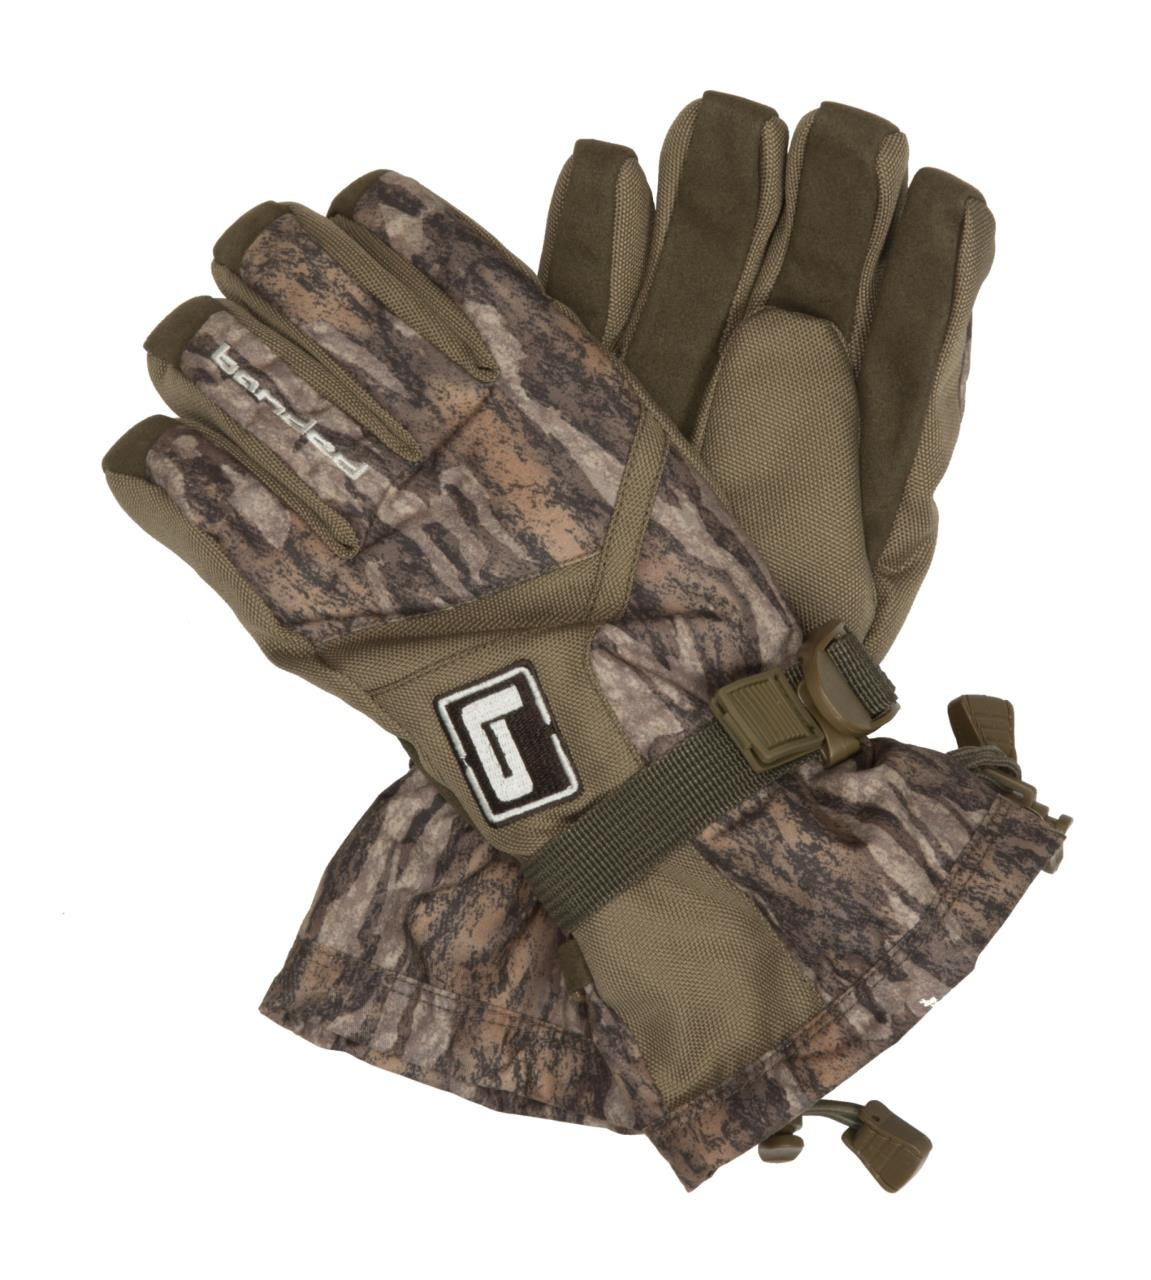 Banded Youth White River Insulated Glove - 848222020006